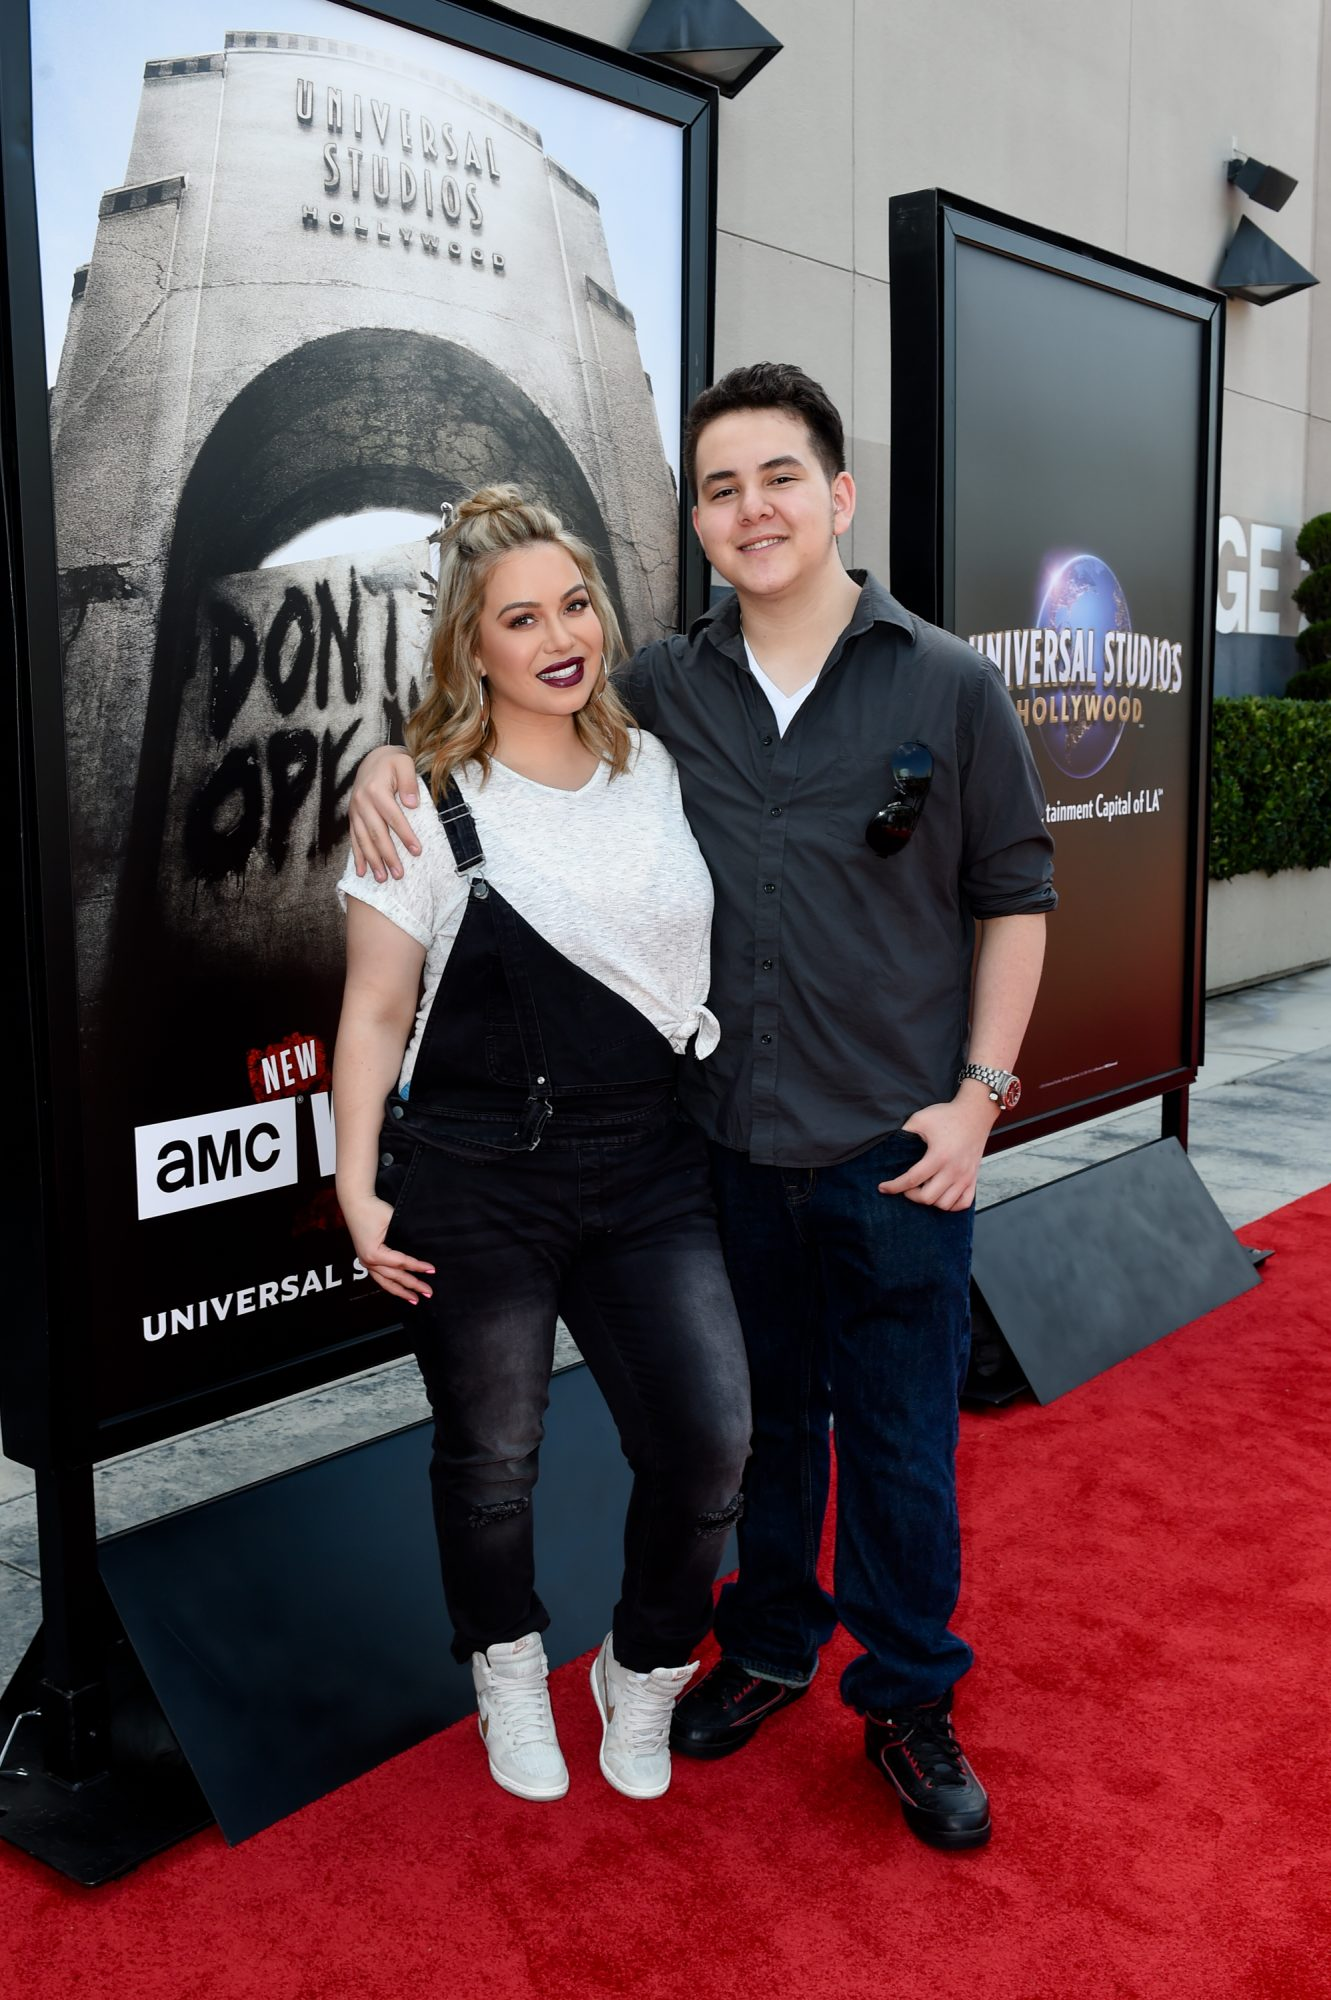 """Press Event For """"The Walking Dead"""" Attraction """"Don't Open, Dead Inside"""" At Universal Studios Hollywood - Red Carpet"""